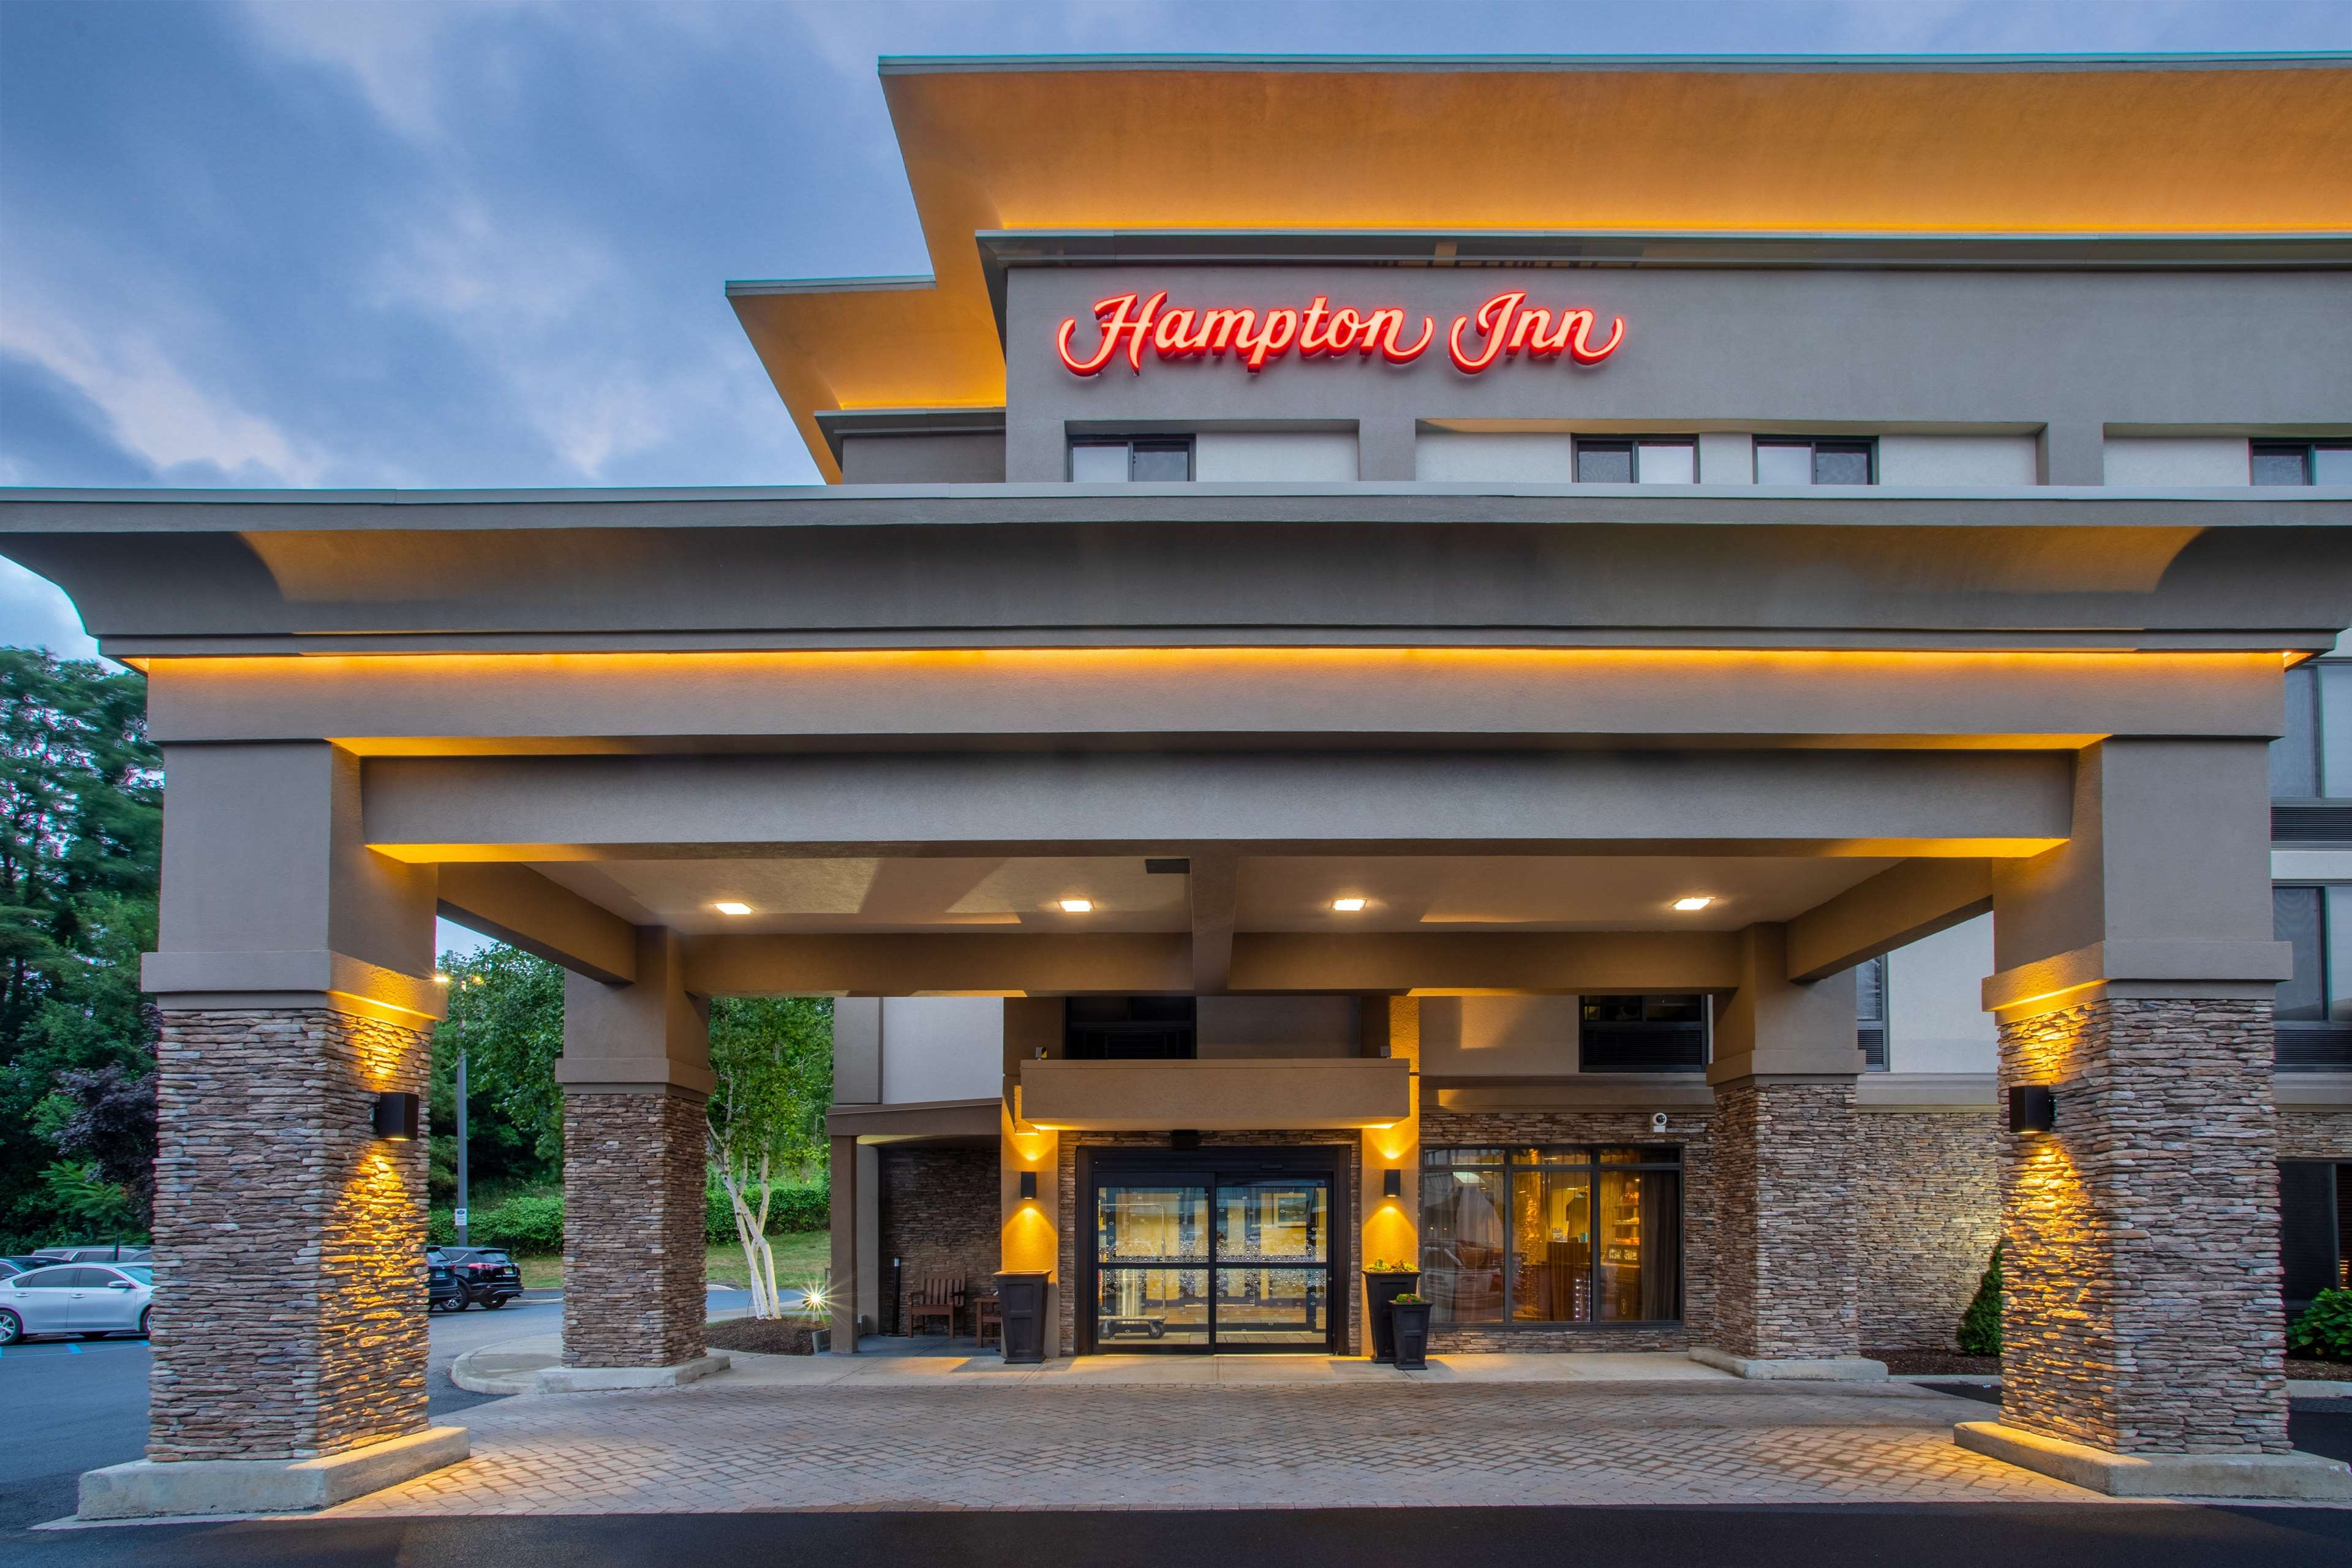 Hampton Inn Fishkill image 1